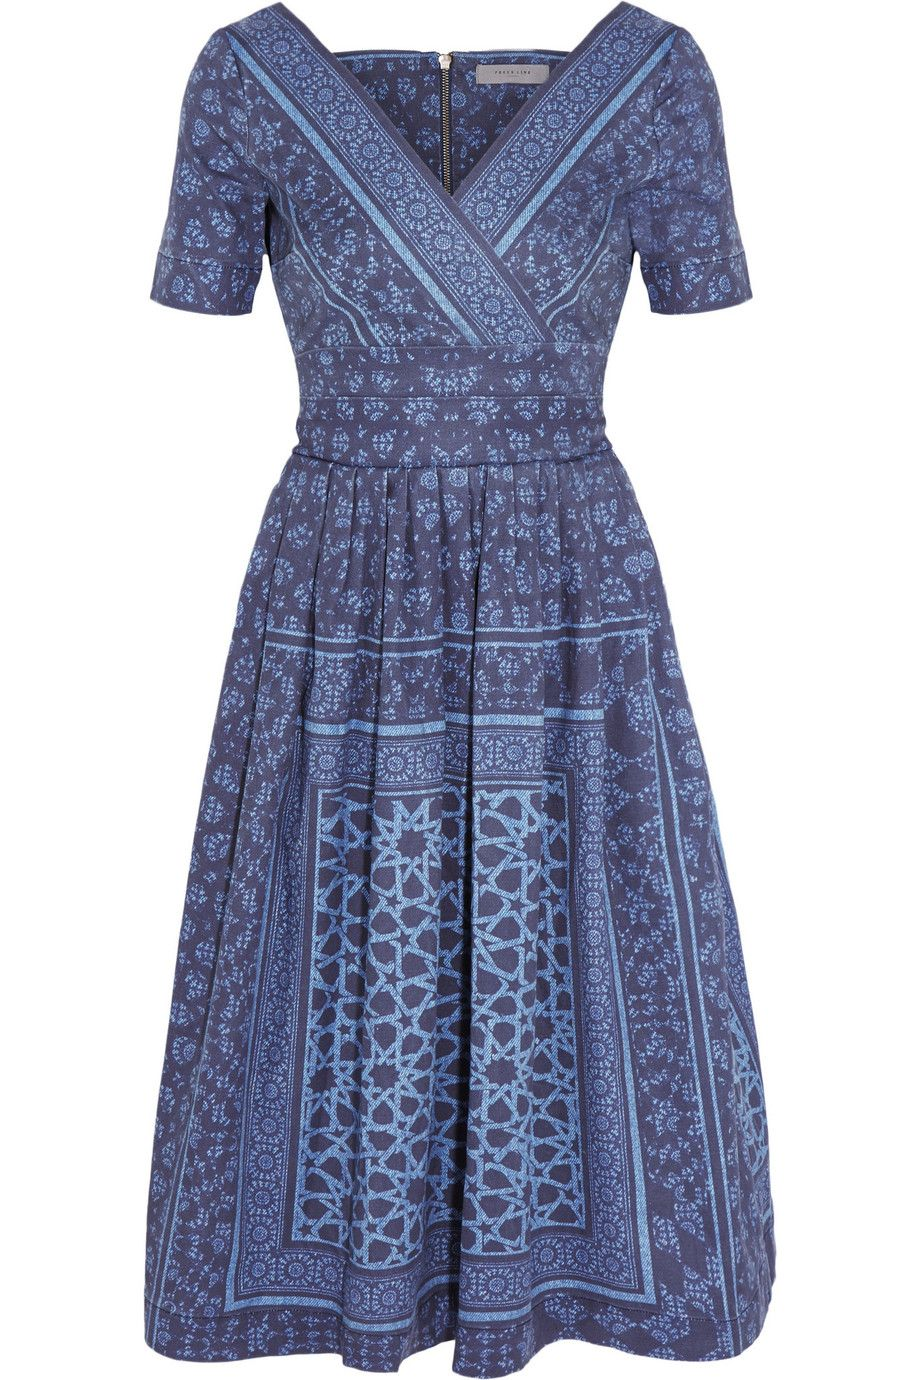 05478aa08a Shop on-sale Preen Line Saira printed denim dress. Browse other discount  designer Dresses   more on The Most Fashionable Fashion Outlet